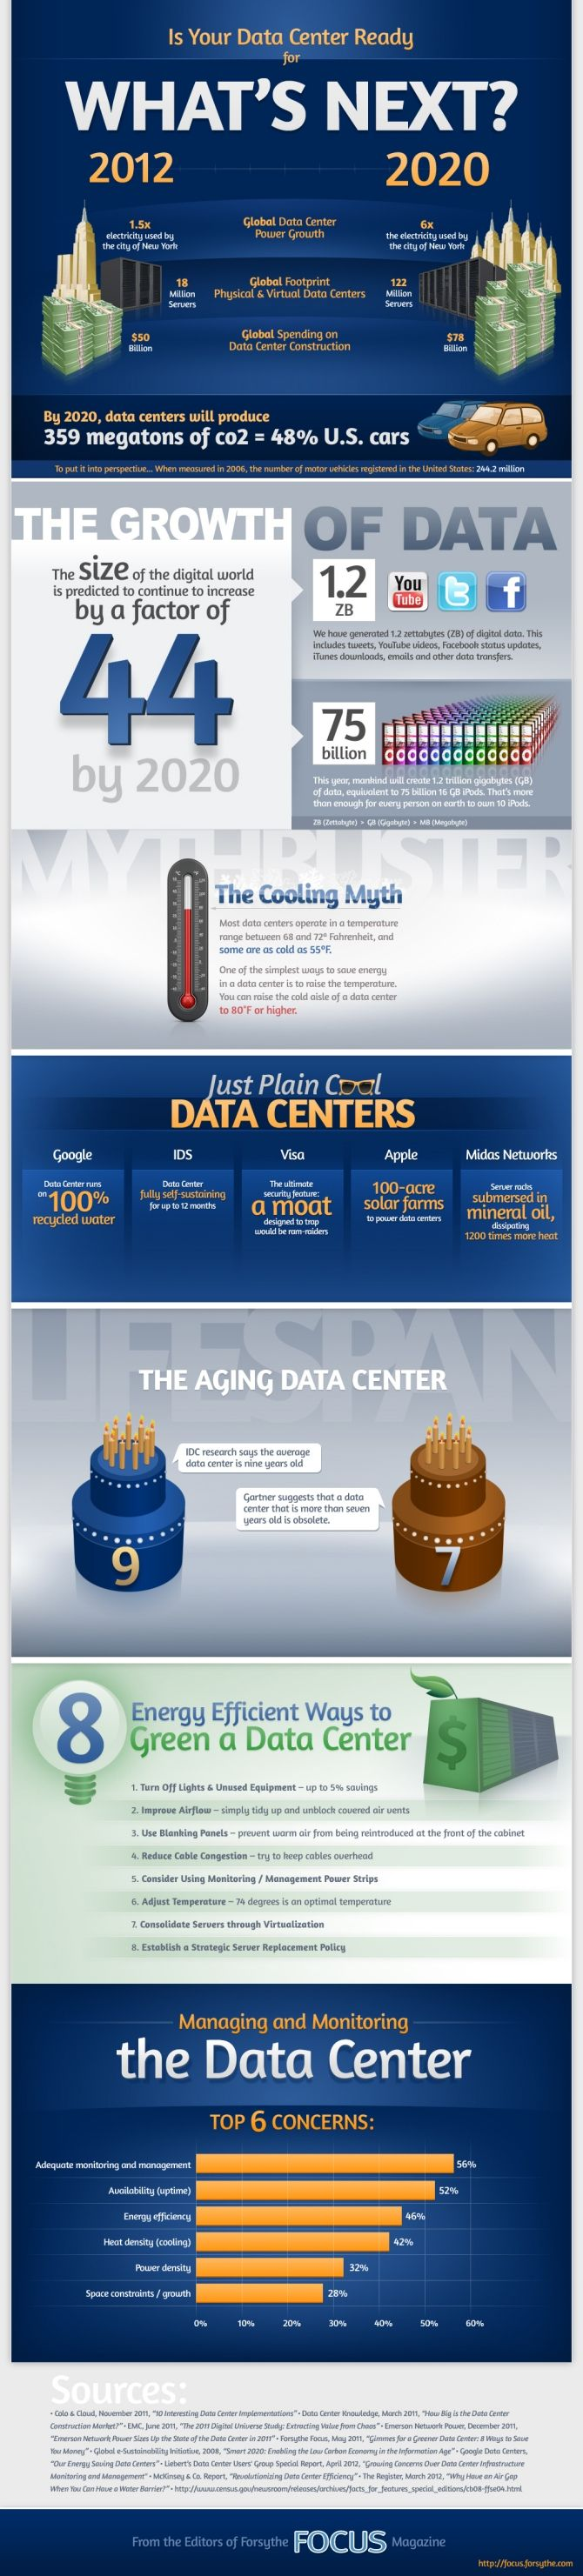 Is your data center ready for the big data squeeze? This infographic from Forsythe Focus Magazine outlines what will be required from our data centers by 2020, when digital data is expected to increase by a factor of 44.